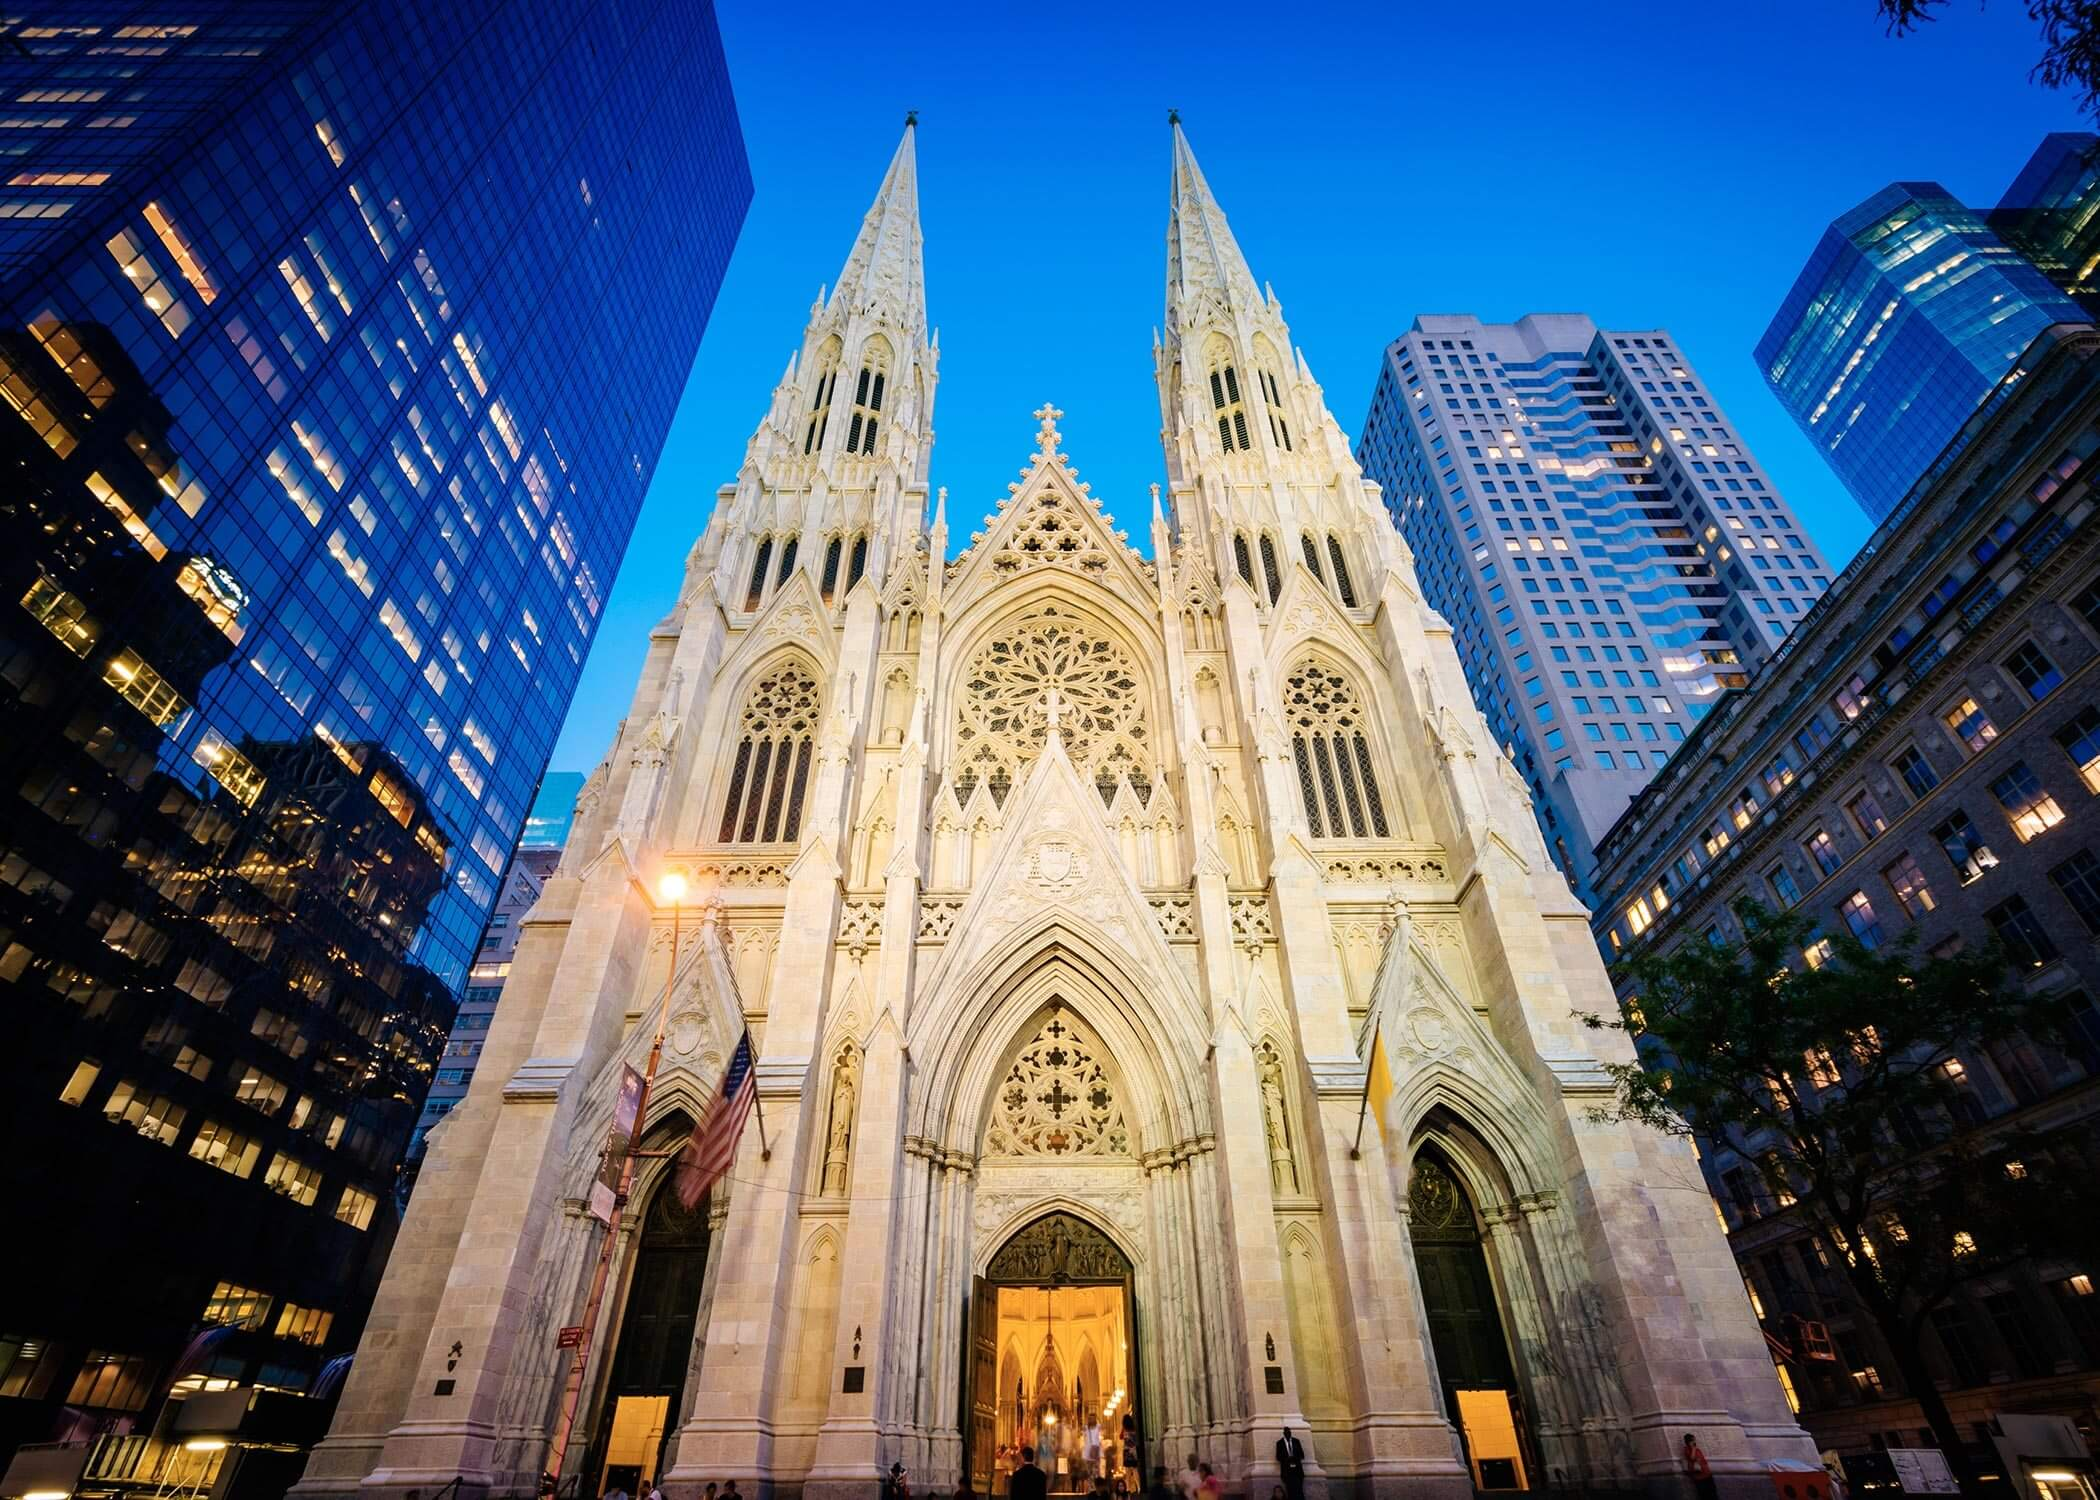 Exterior of a large white gothic cathedral surrounded by modern city buildings